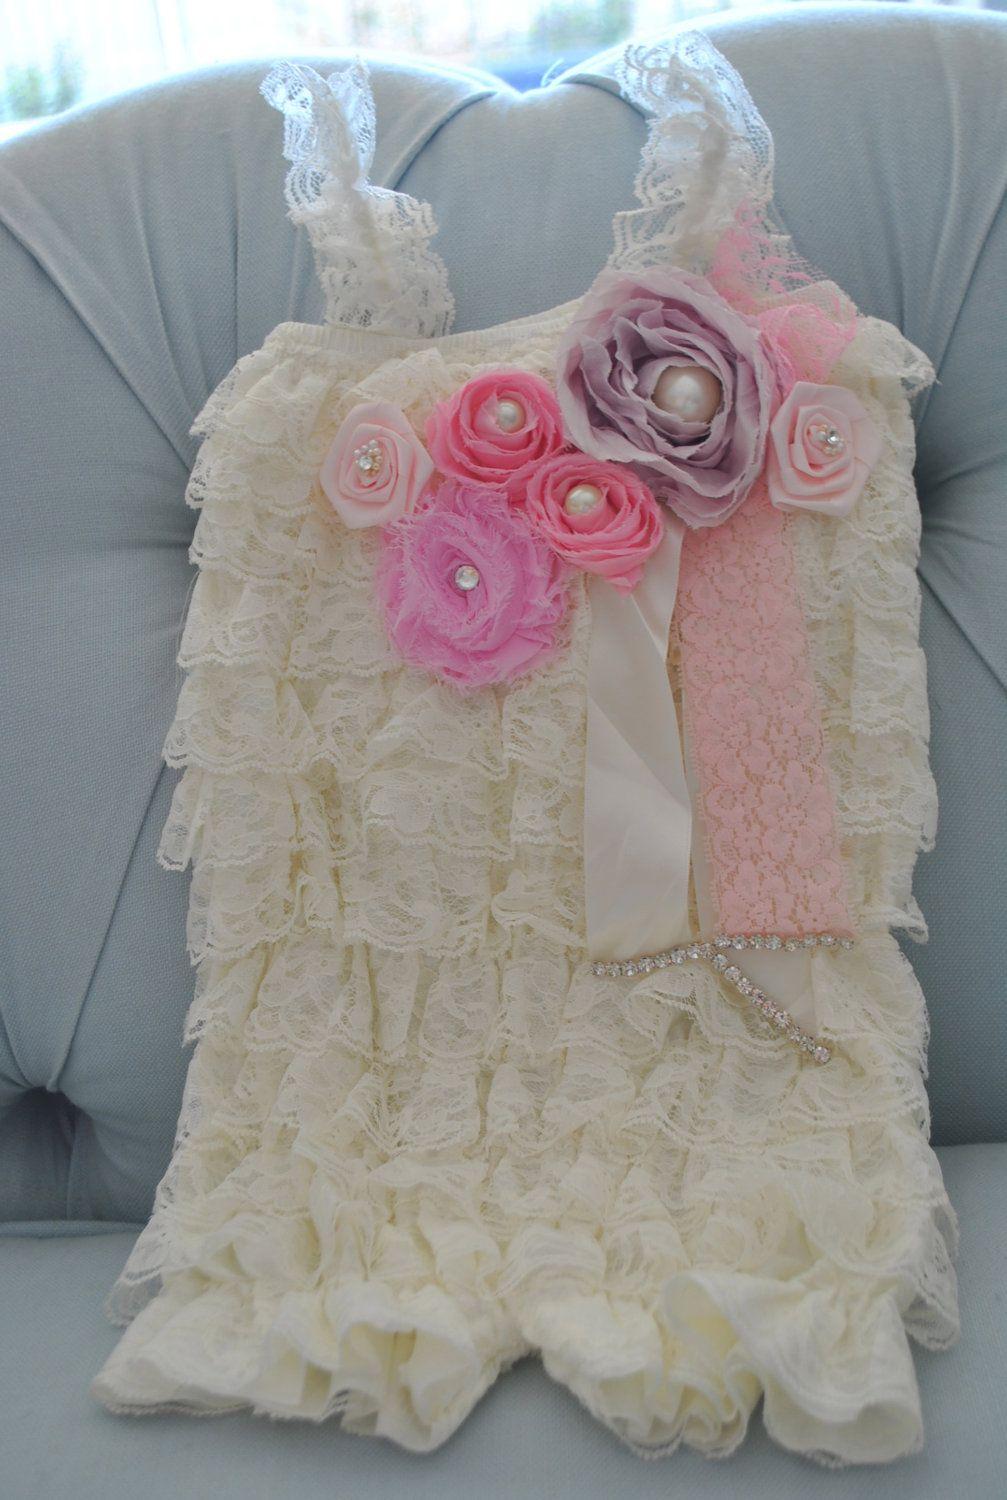 46505b0e7 Lace Baby Romper - Girl Romper - Adorned with Pink Medley of Flowers ...